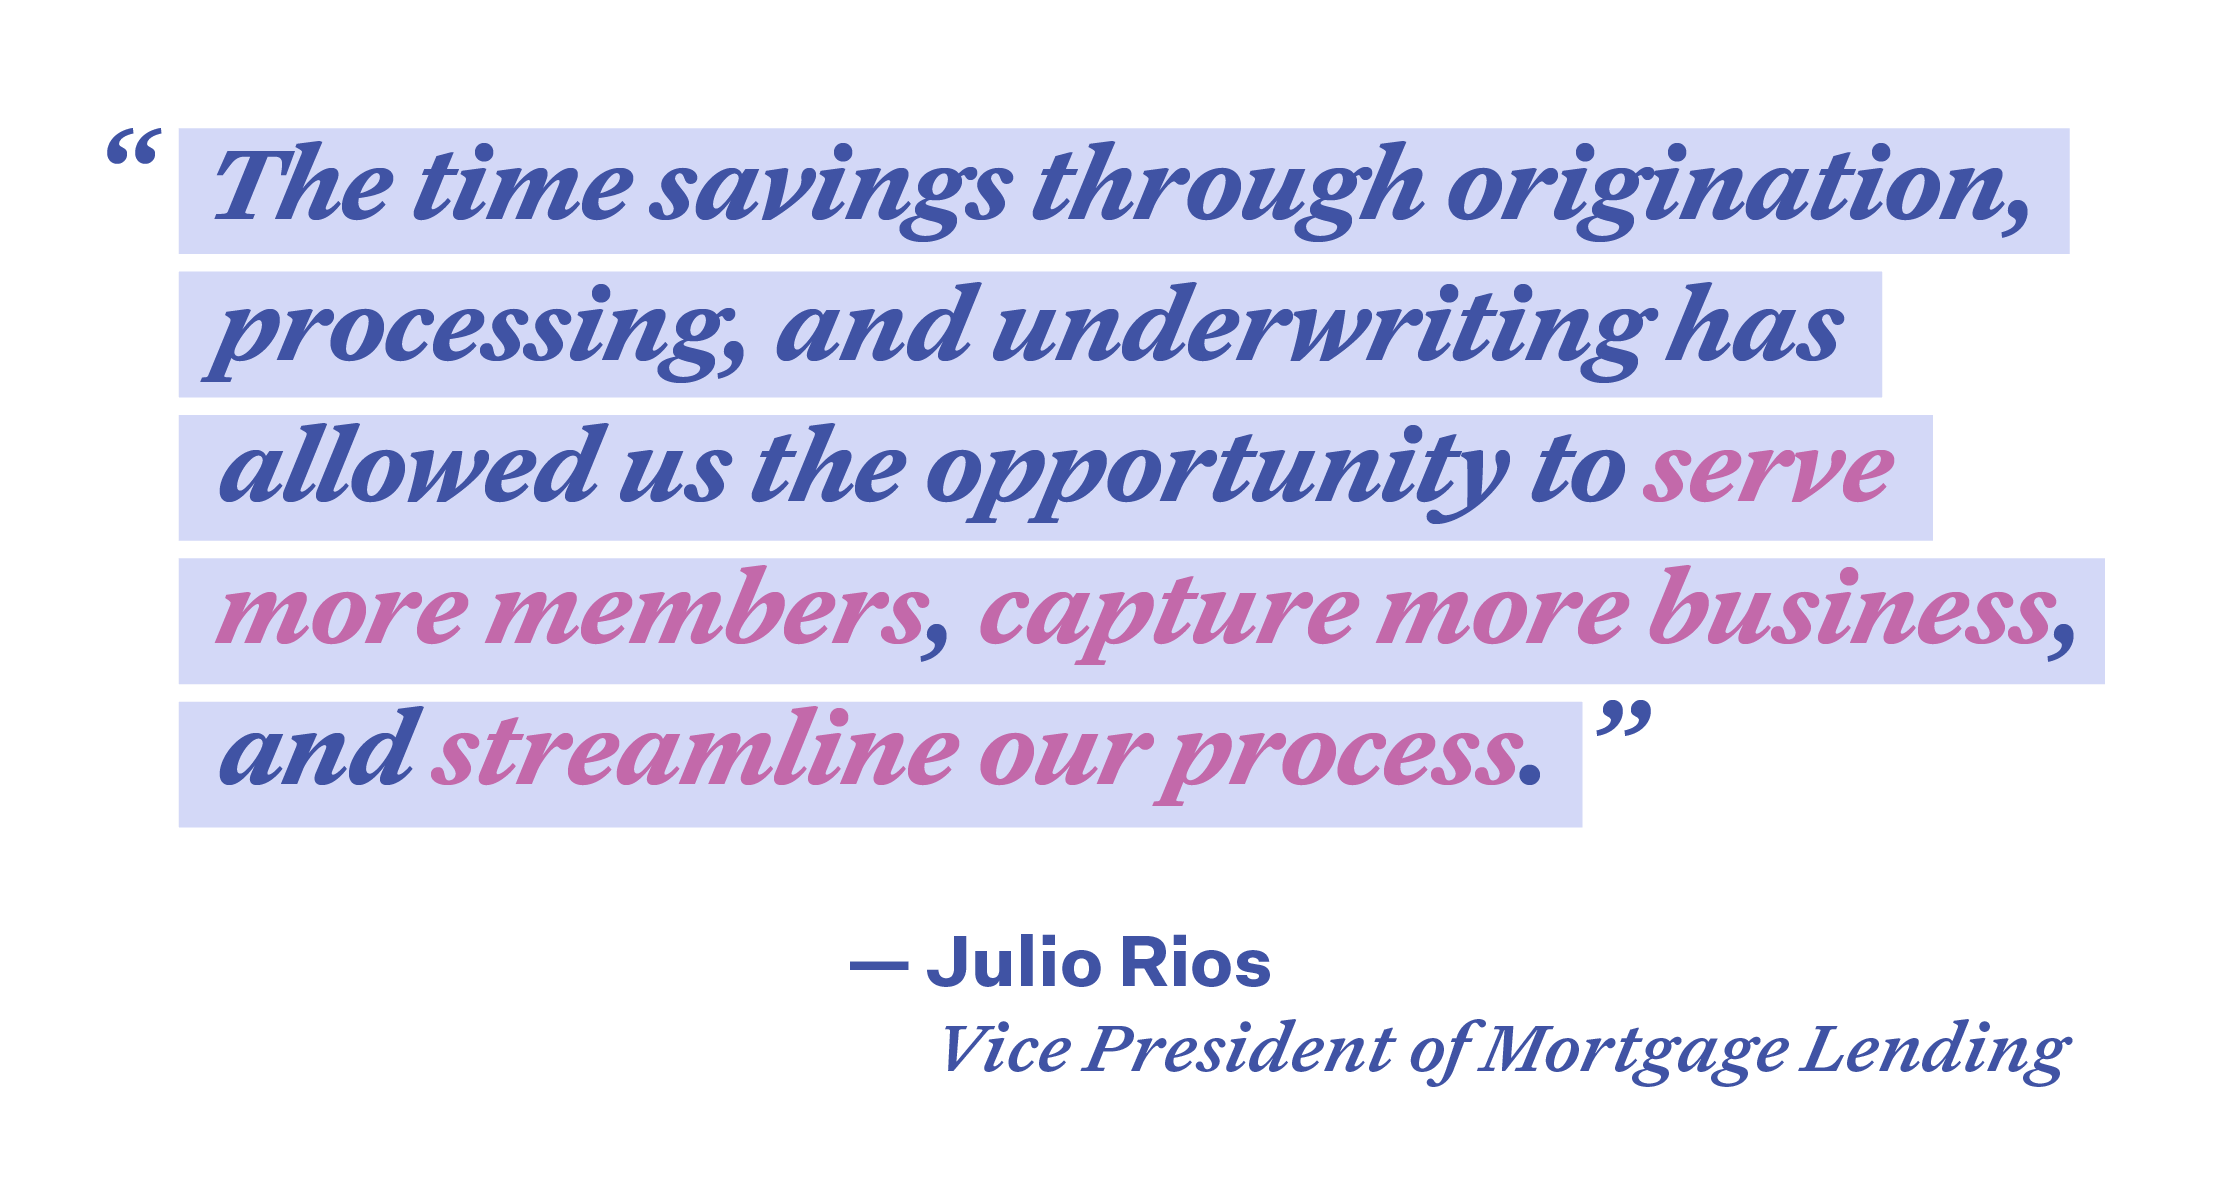 The time savings through origination, processing, and underwriting has allowed us the opportunity to serve more members, capture more business, and streamline our process.